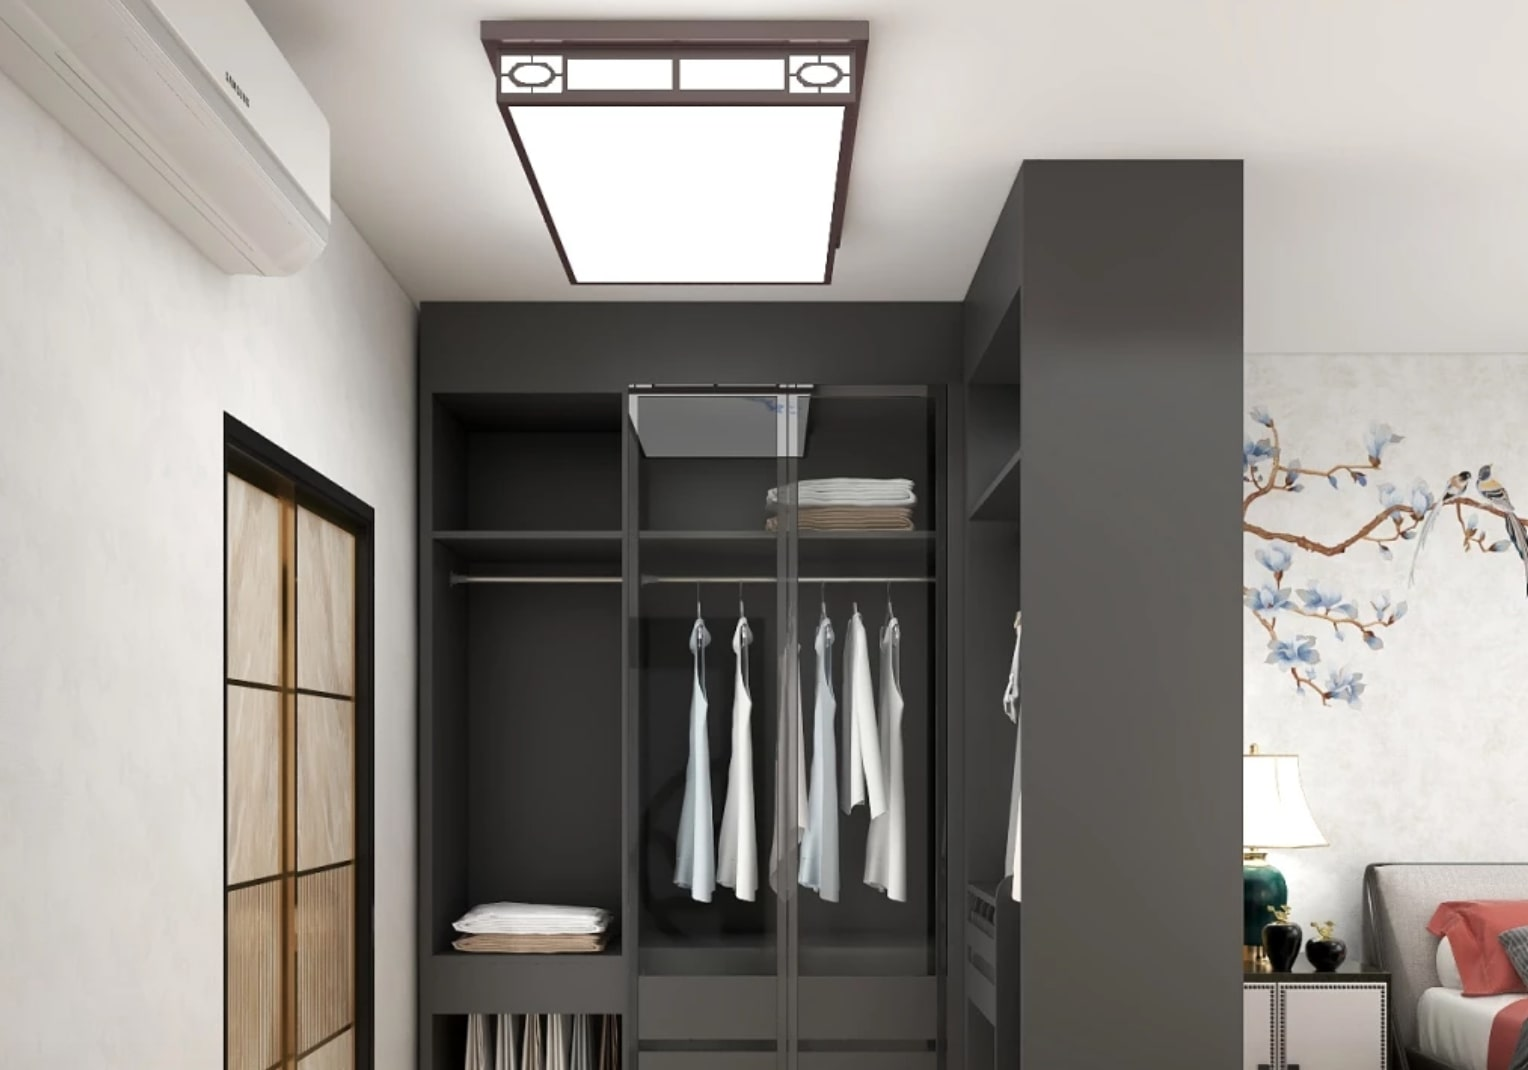 squarerooms-l-shaped-walk-in-wardrobe-ideas-hdb